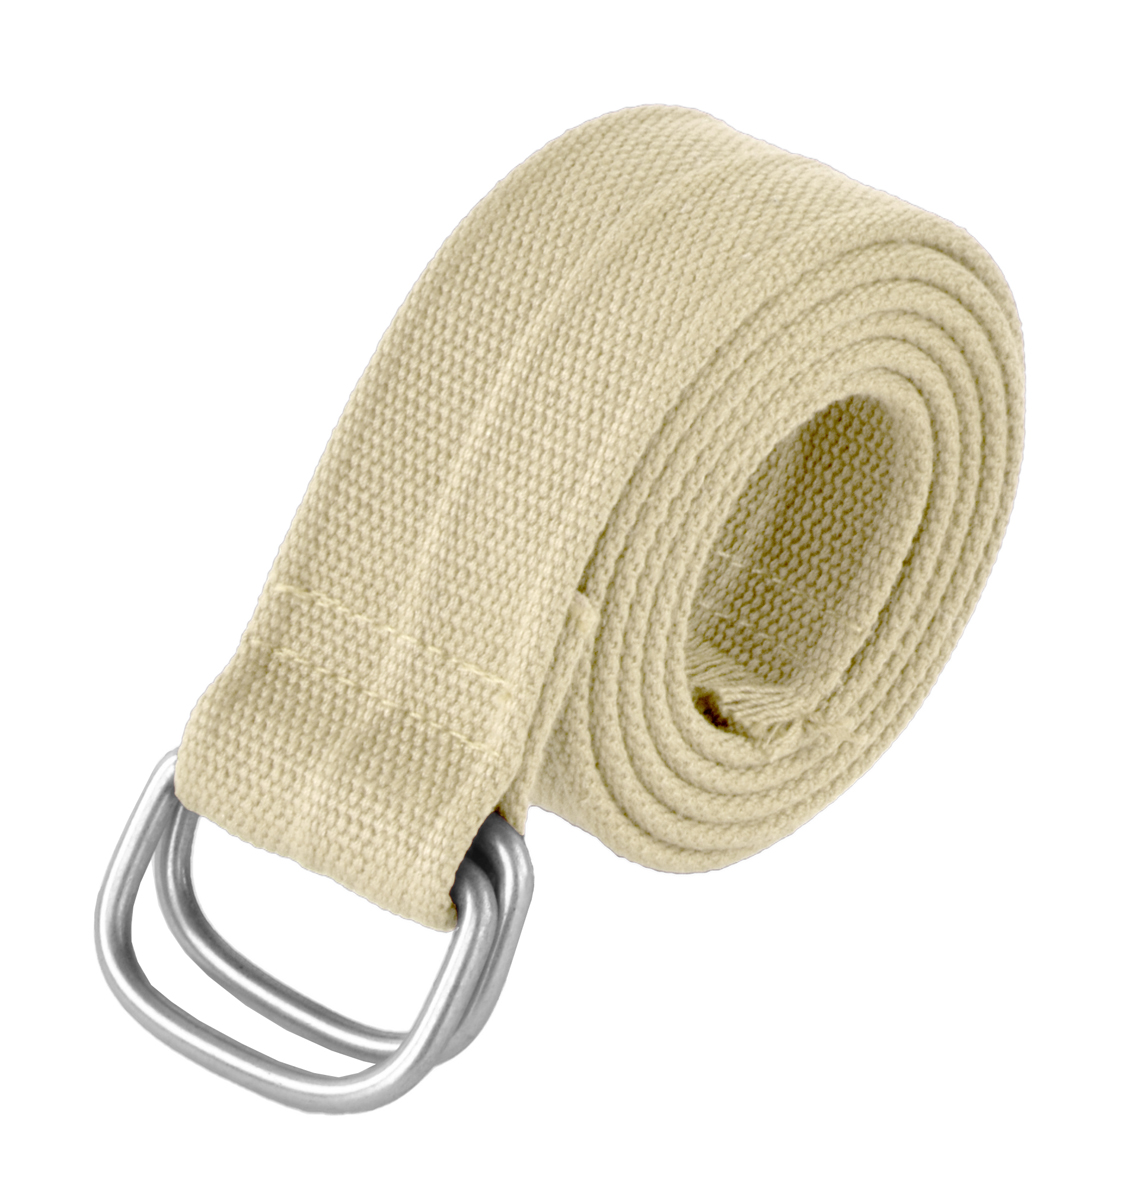 Attractive & Durable Mens Cotton Belt with Loop Buckle By Stone Touch - Mens Belts Beige Silver Buckle 47 Inches